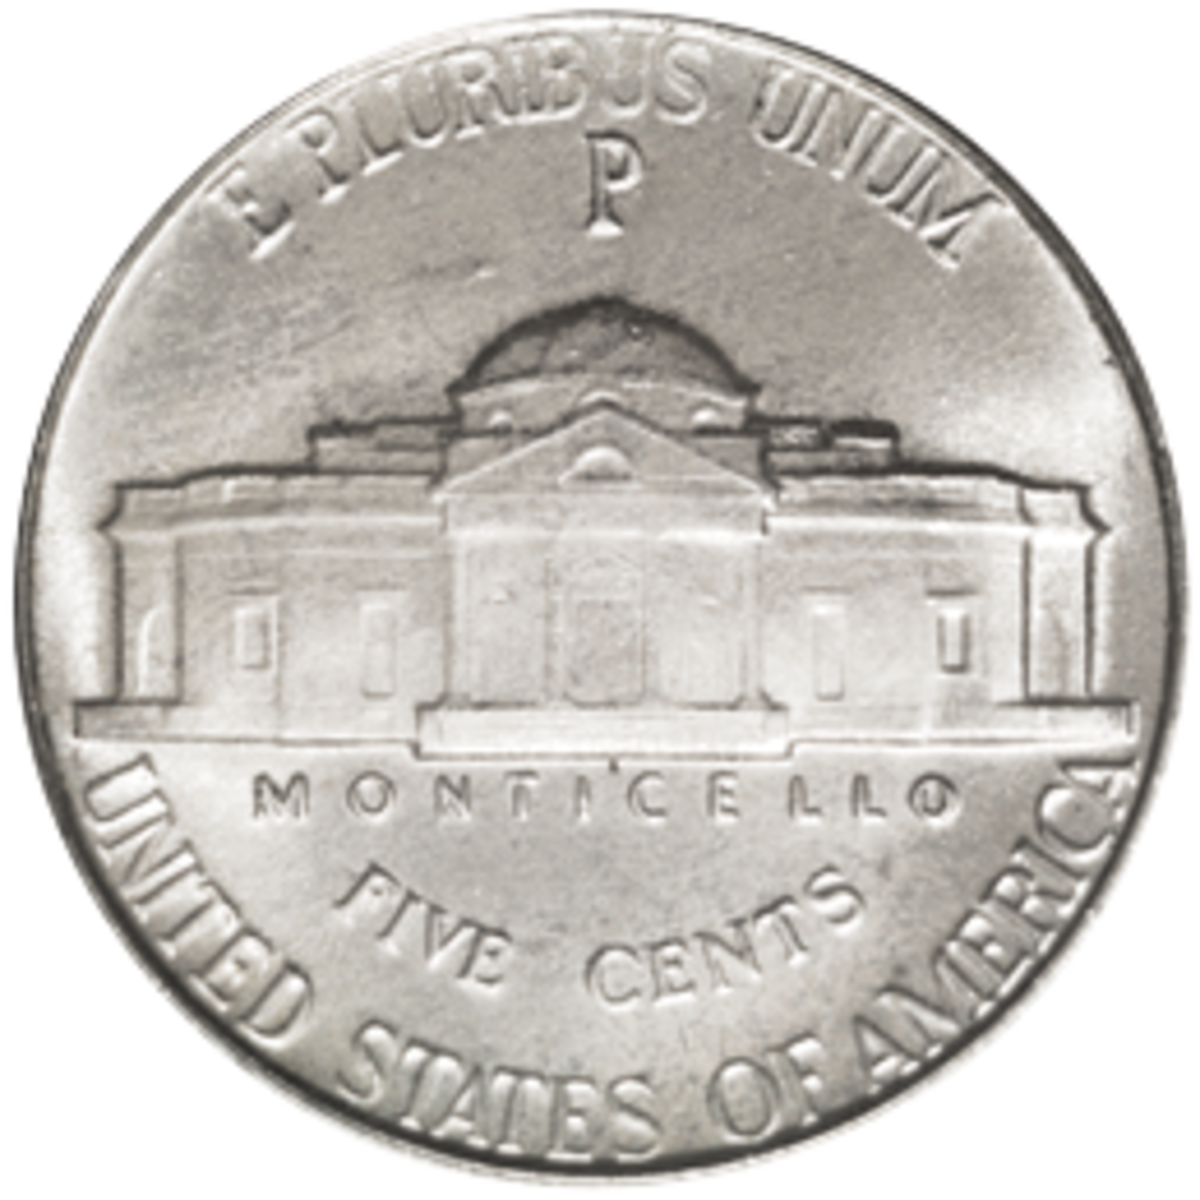 Why does a large mintmark appear above the dome on Monticello on the war nickels of 1942 to 1945?